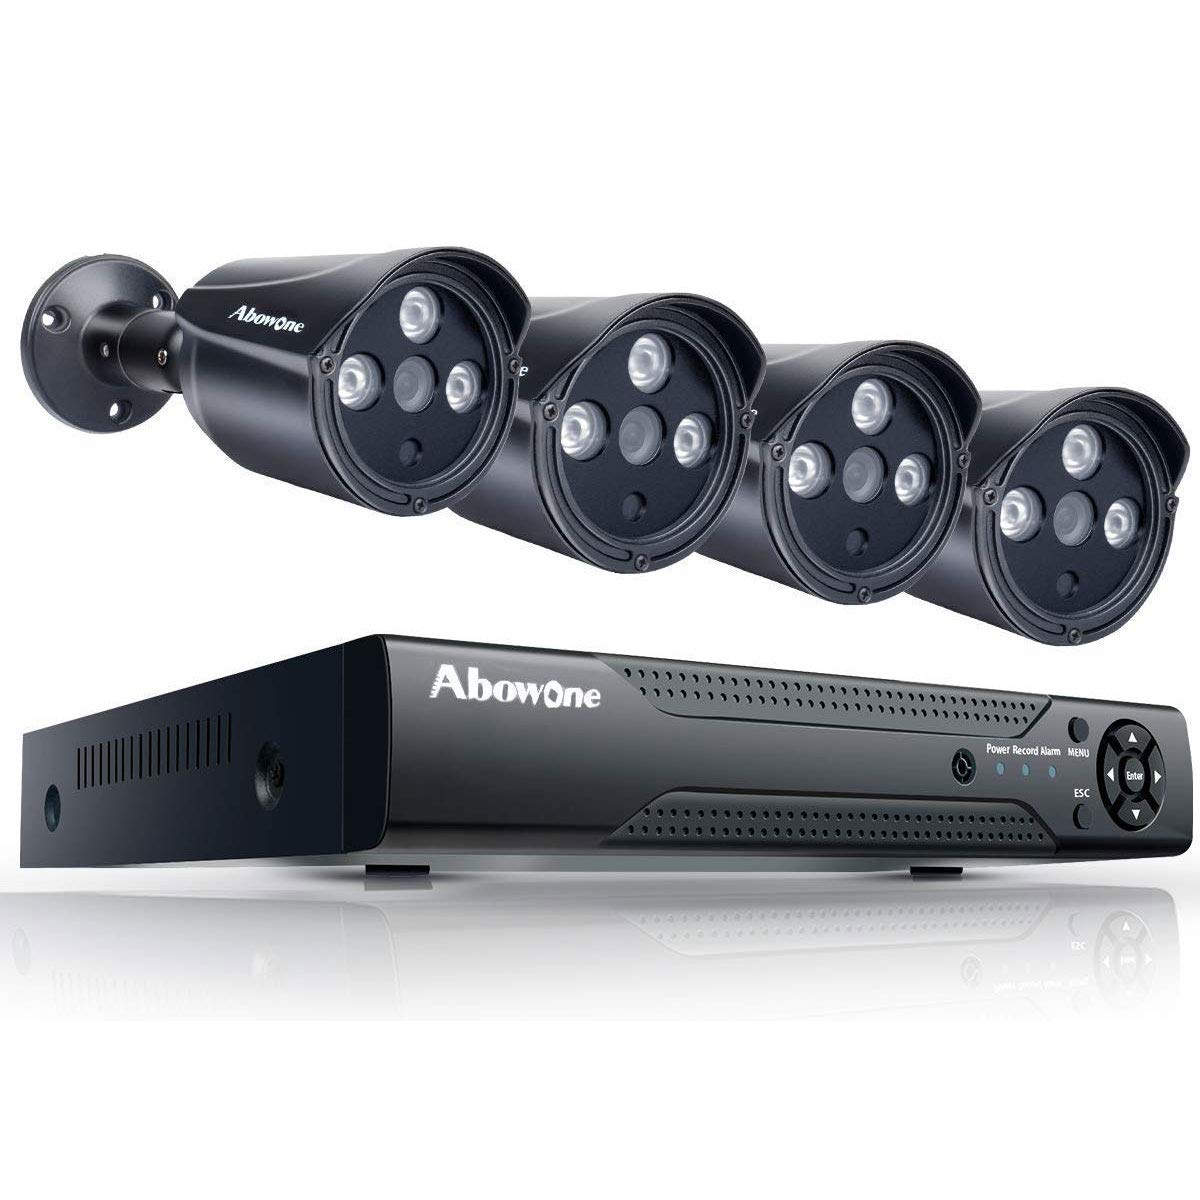 PoE Security Camera System PoE 1080P Abowone 4 Channel PoE NVR 4PCS 2.0MP 1080P IP66 Weatherproof Indoor/Outdoor IP Cameras Security Camera Remote View Motion Detect HD Night Vision,No Hard Drive by Abowone